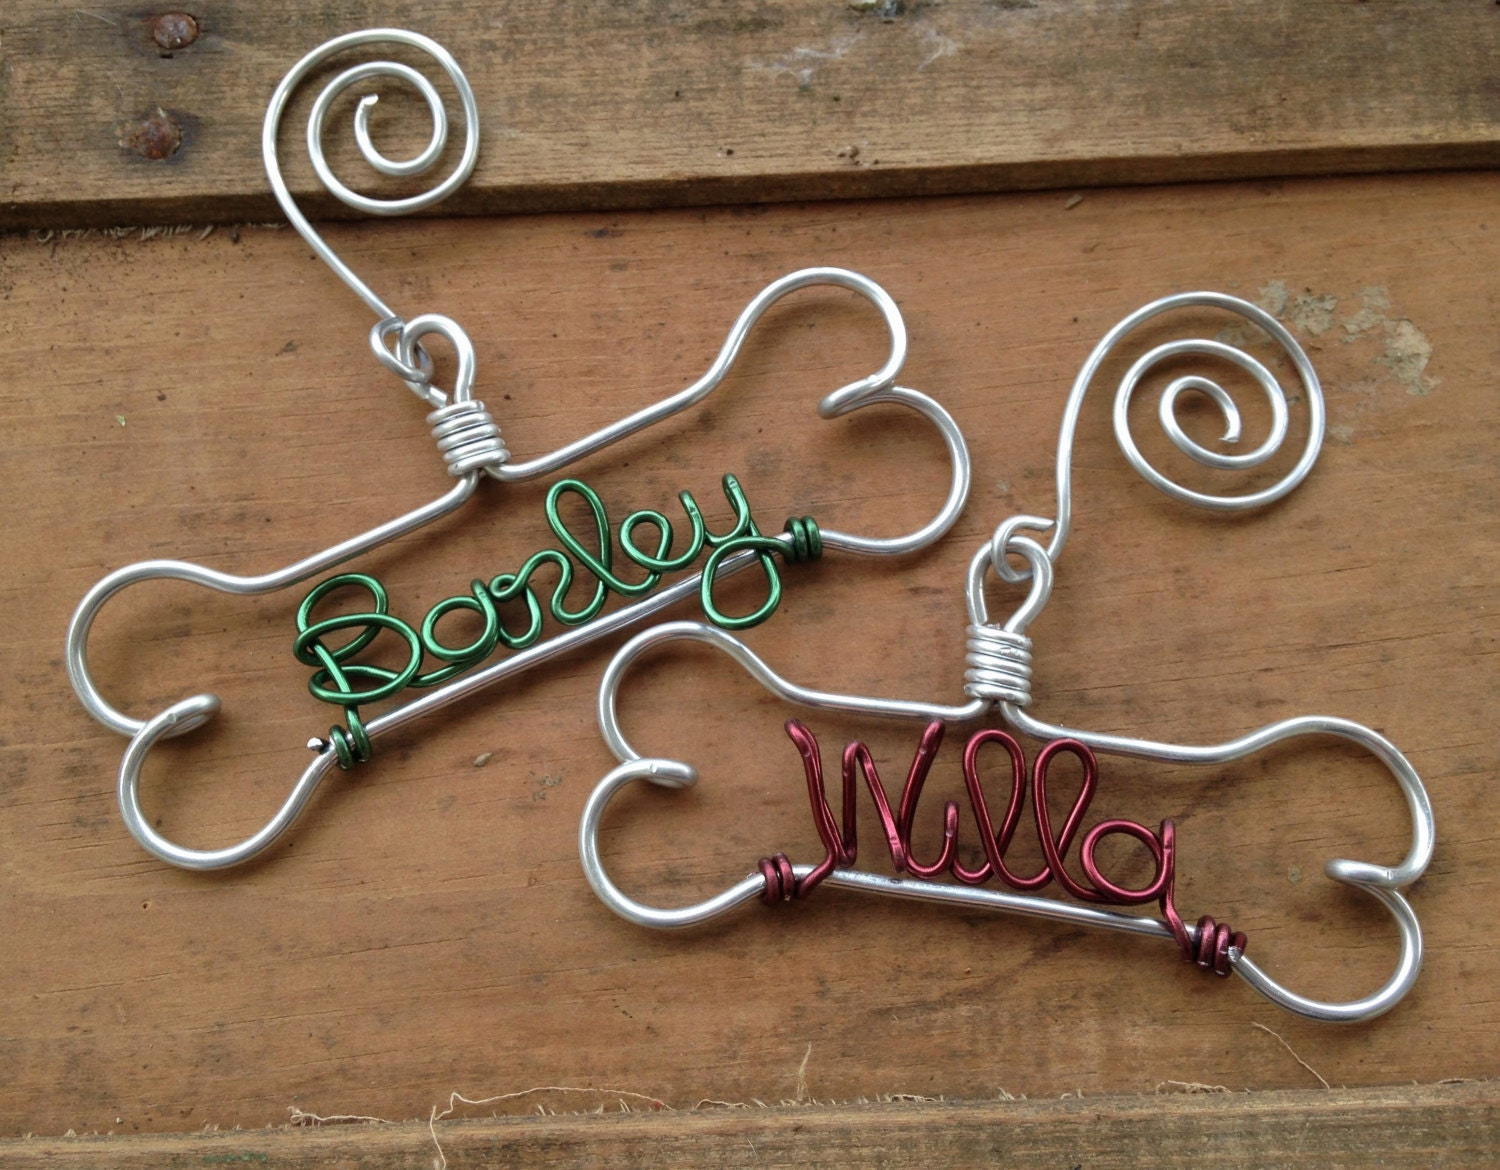 Personalized cat christmas ornaments - Personalized Pet Ornament Handcrafted Wire Dog Bone With Pet S Name Dog Christmas Gift